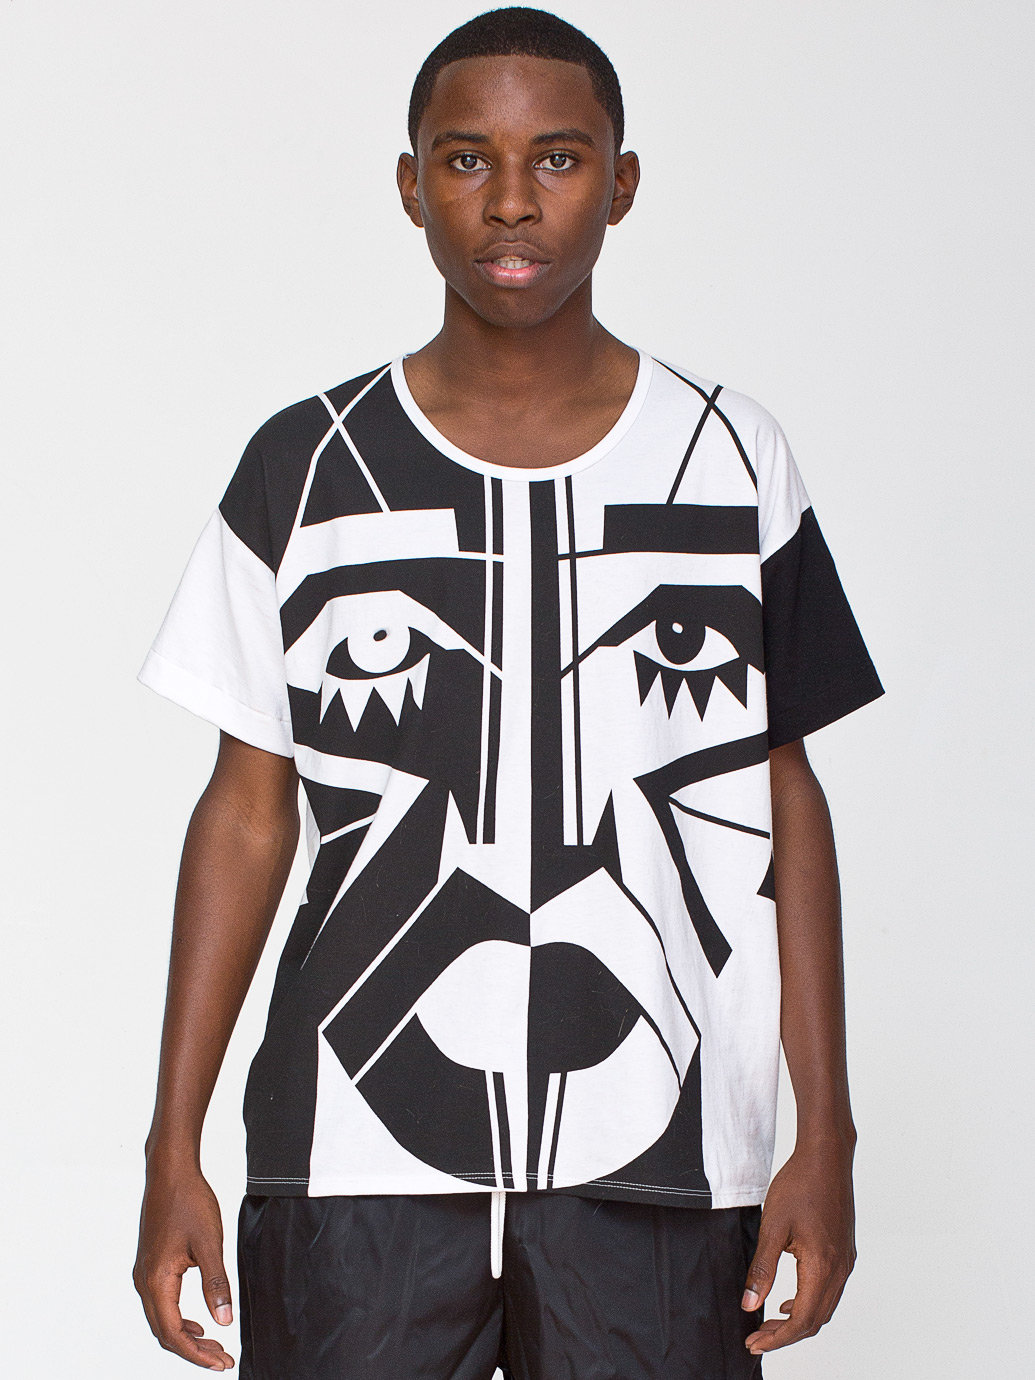 KESH X American Apparel Face Le New Big Tee | American Apparel